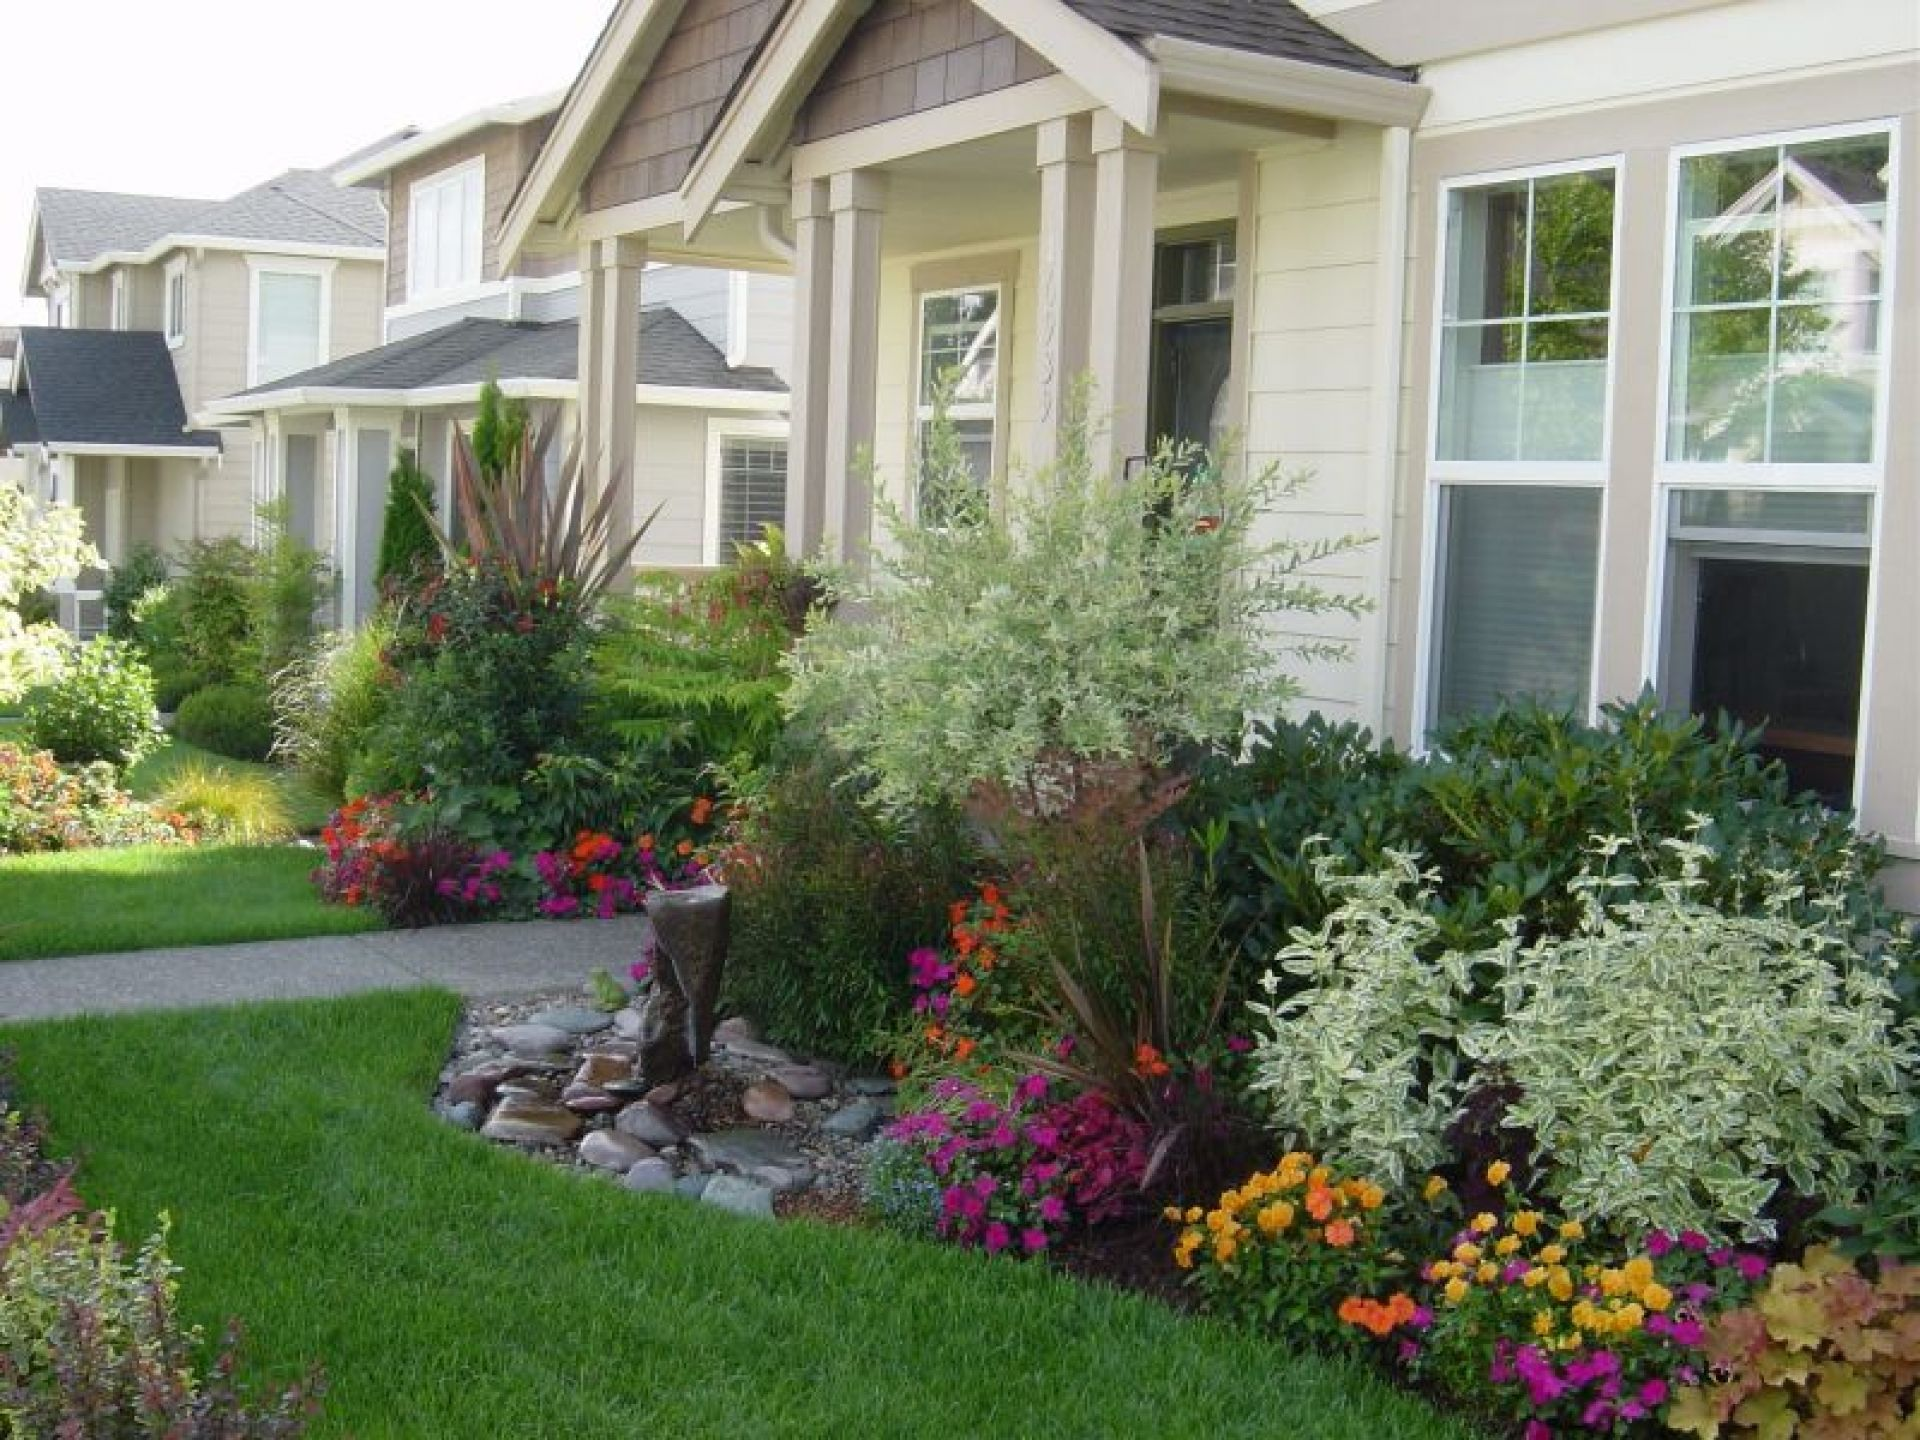 Gardening U0026 Landscaping : Small Front Yard Landscape Ideas Front Yard  Ideasu201a Landscape Ideasu201a Front Yard Also Gardening U0026 Landscapings From Some  Front Yard ...